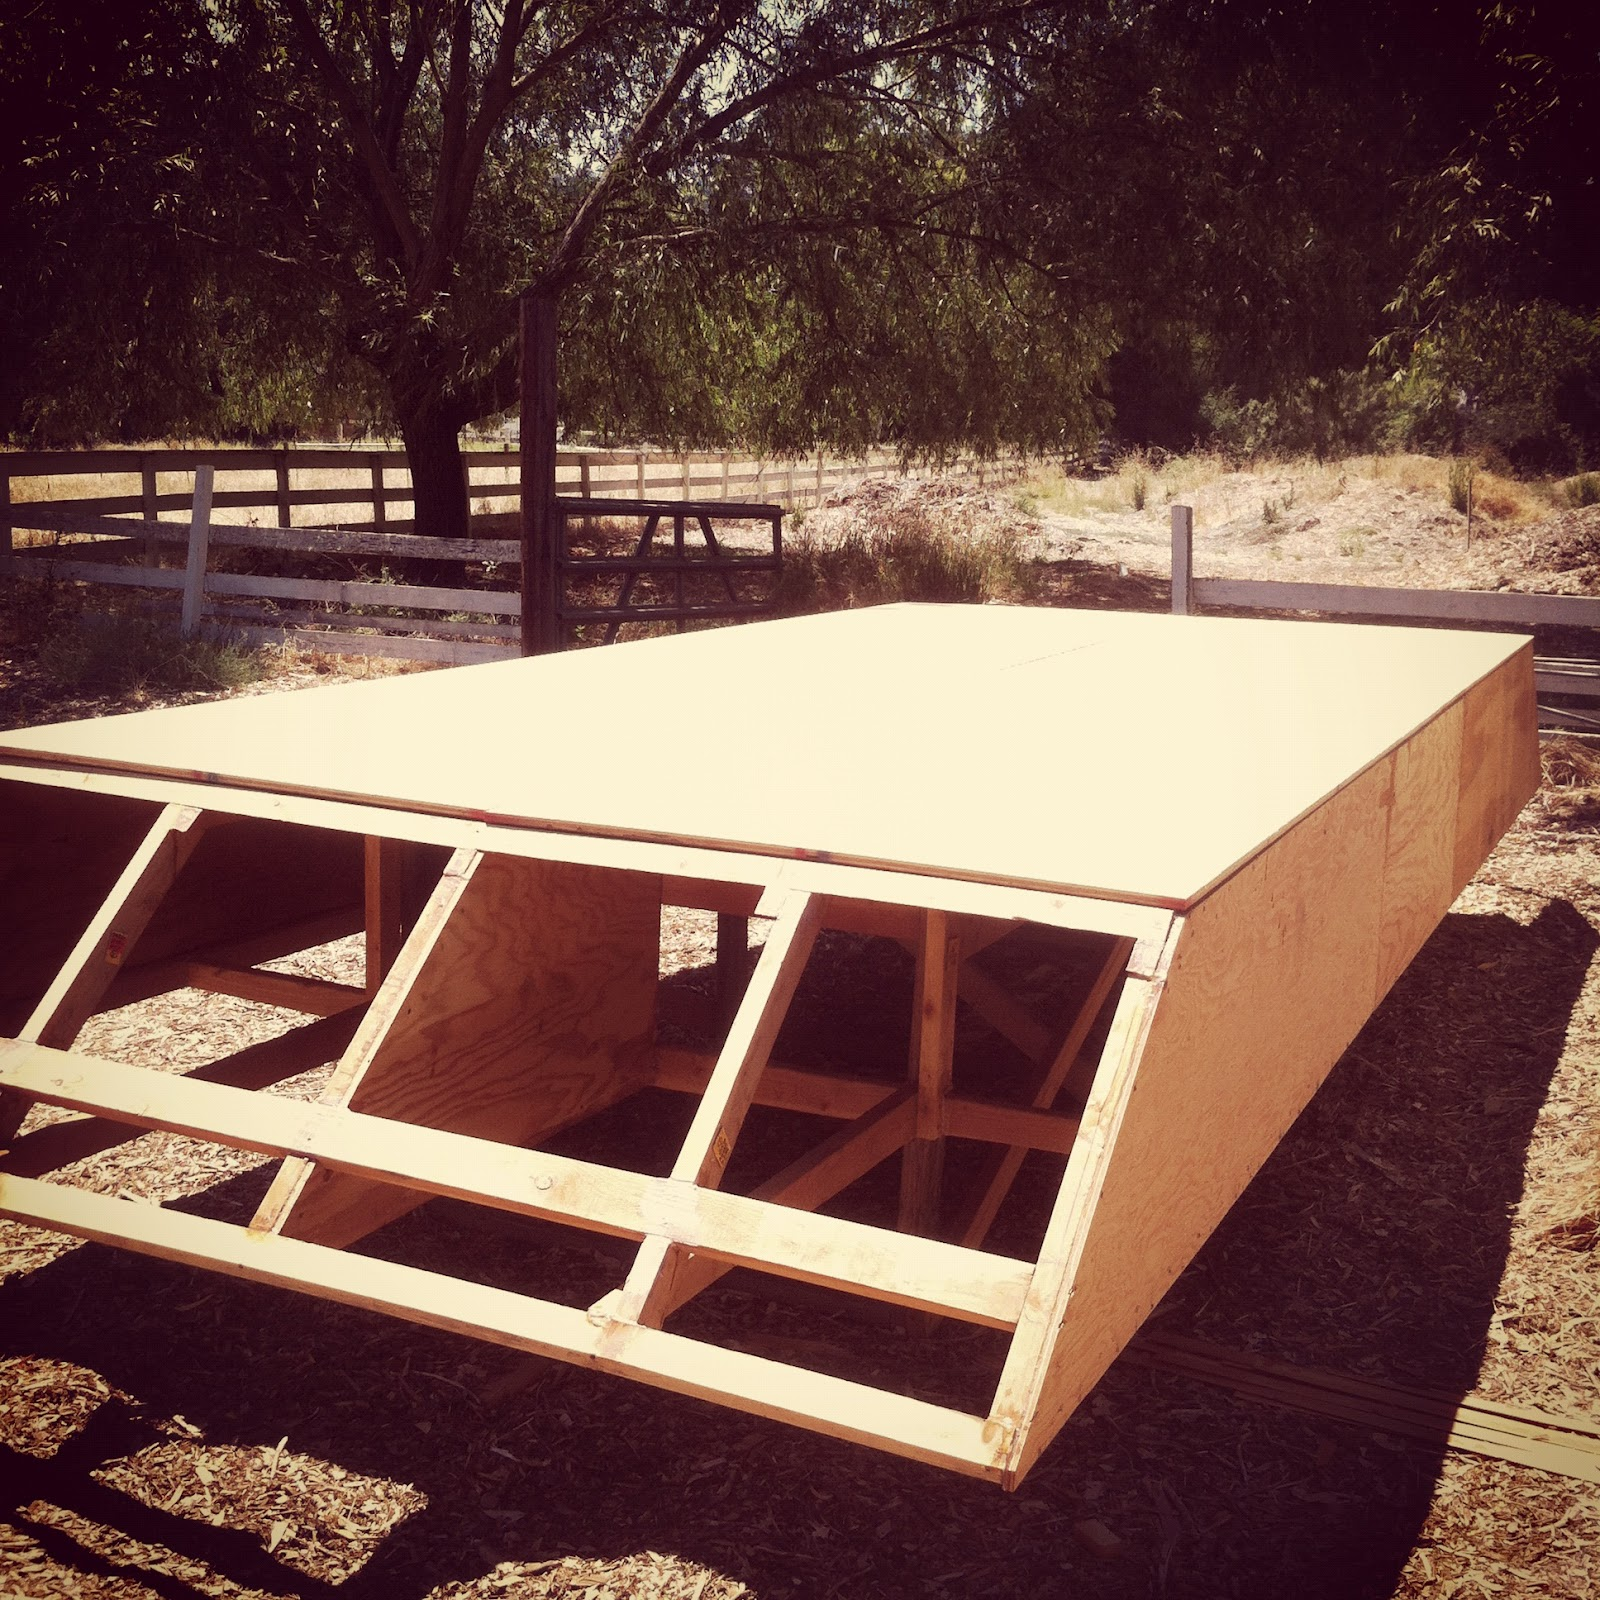 Shanty Boat: Sheeting the Hull